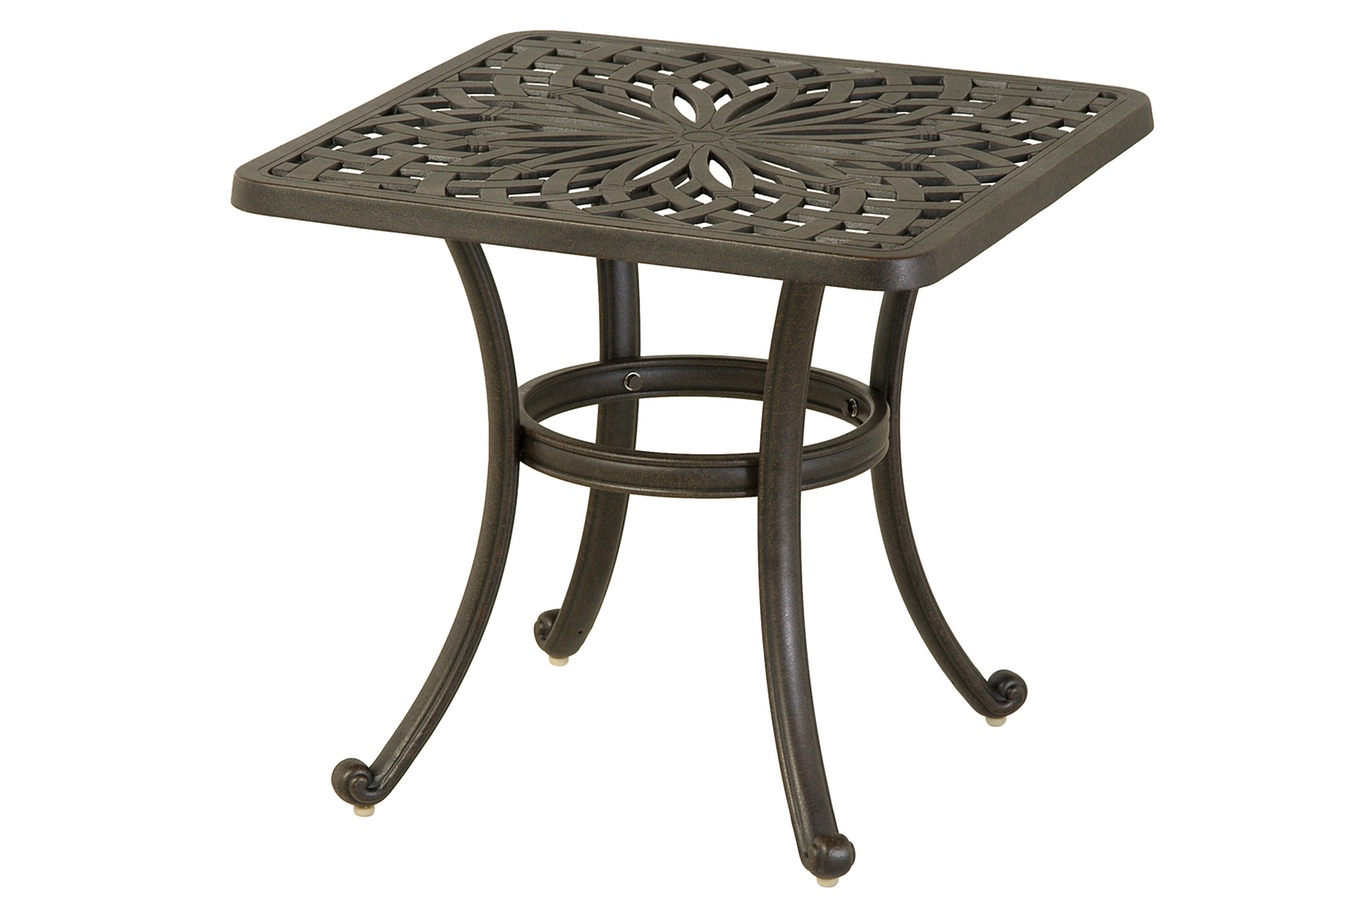 furniture archives page premium patio hanamint fair aluminum square end table stratford wicker folding accent bronze hallway chest wood coffee with metal frame shabby chic half